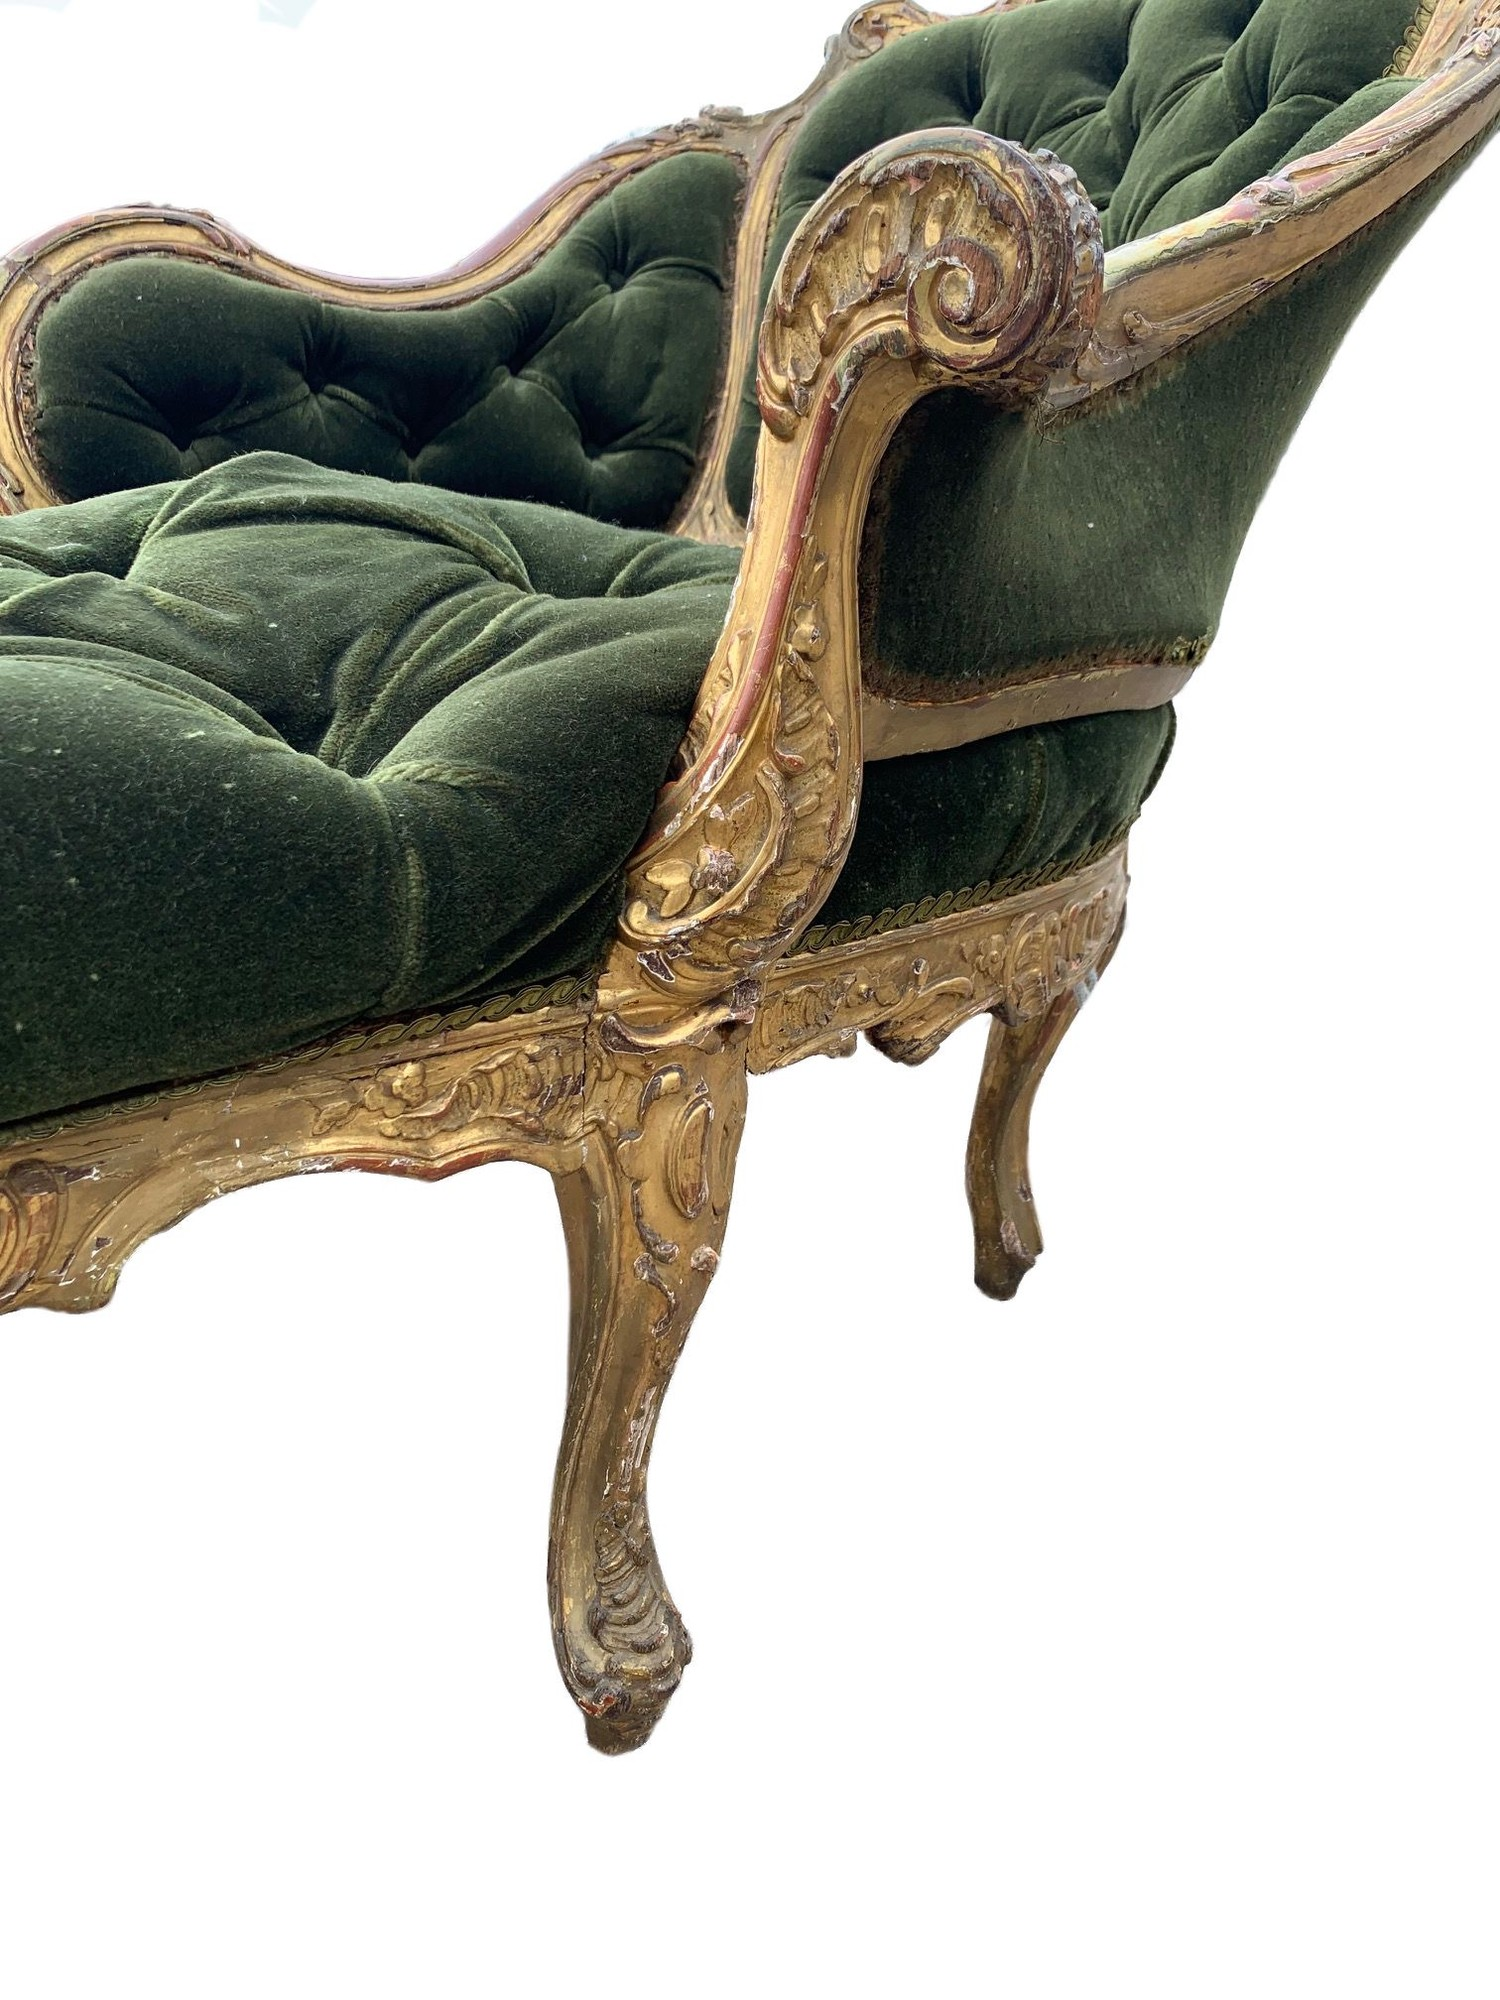 AN 18TH CENTURY FRENCH LOUIS XV ROCOCO CARVED GILTWOOD DUCHESSE DAYBED With button upholstery, frame - Image 5 of 8